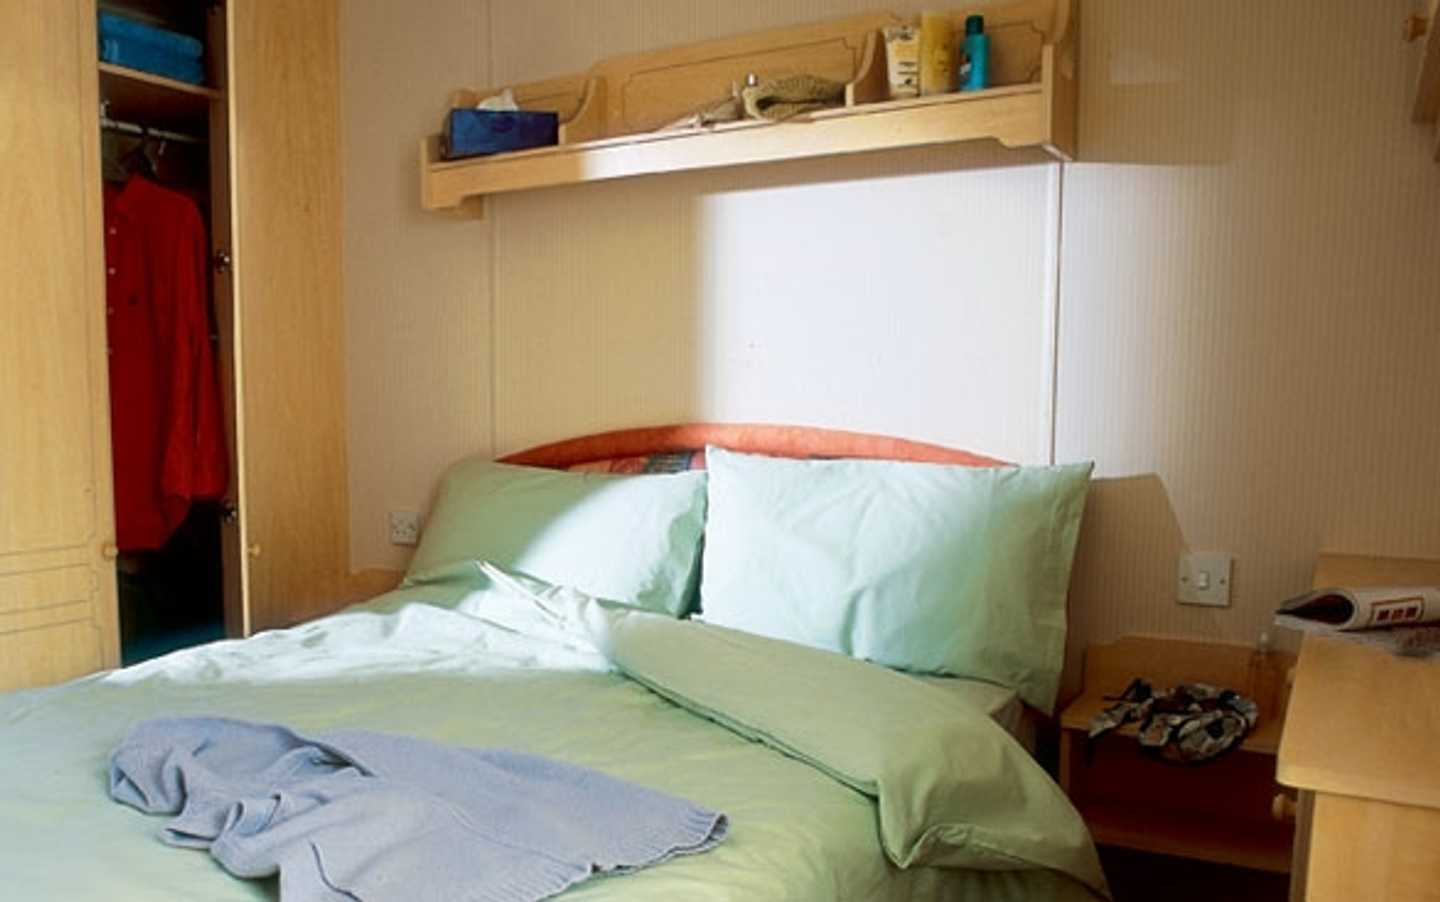 A Comfort Plus chalet master bedroom with double bed, wardrobe, side cabinet and shelf above the bed